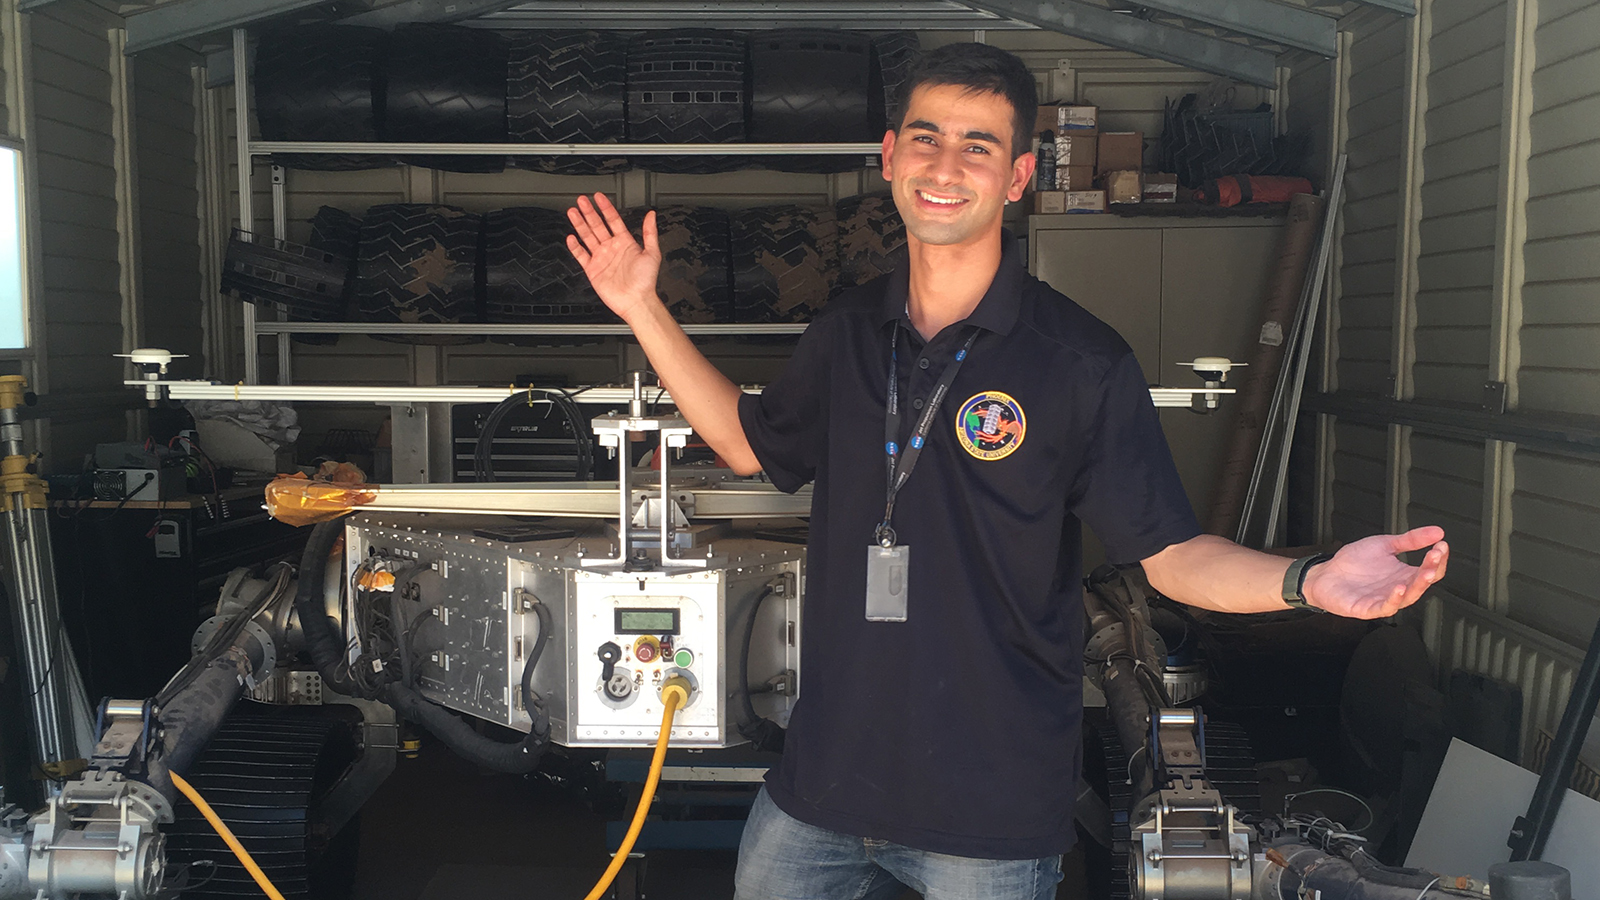 Aditya Khuller stands with his arms outstretched and poses in front of a model Mars rover in a garage at JPL.